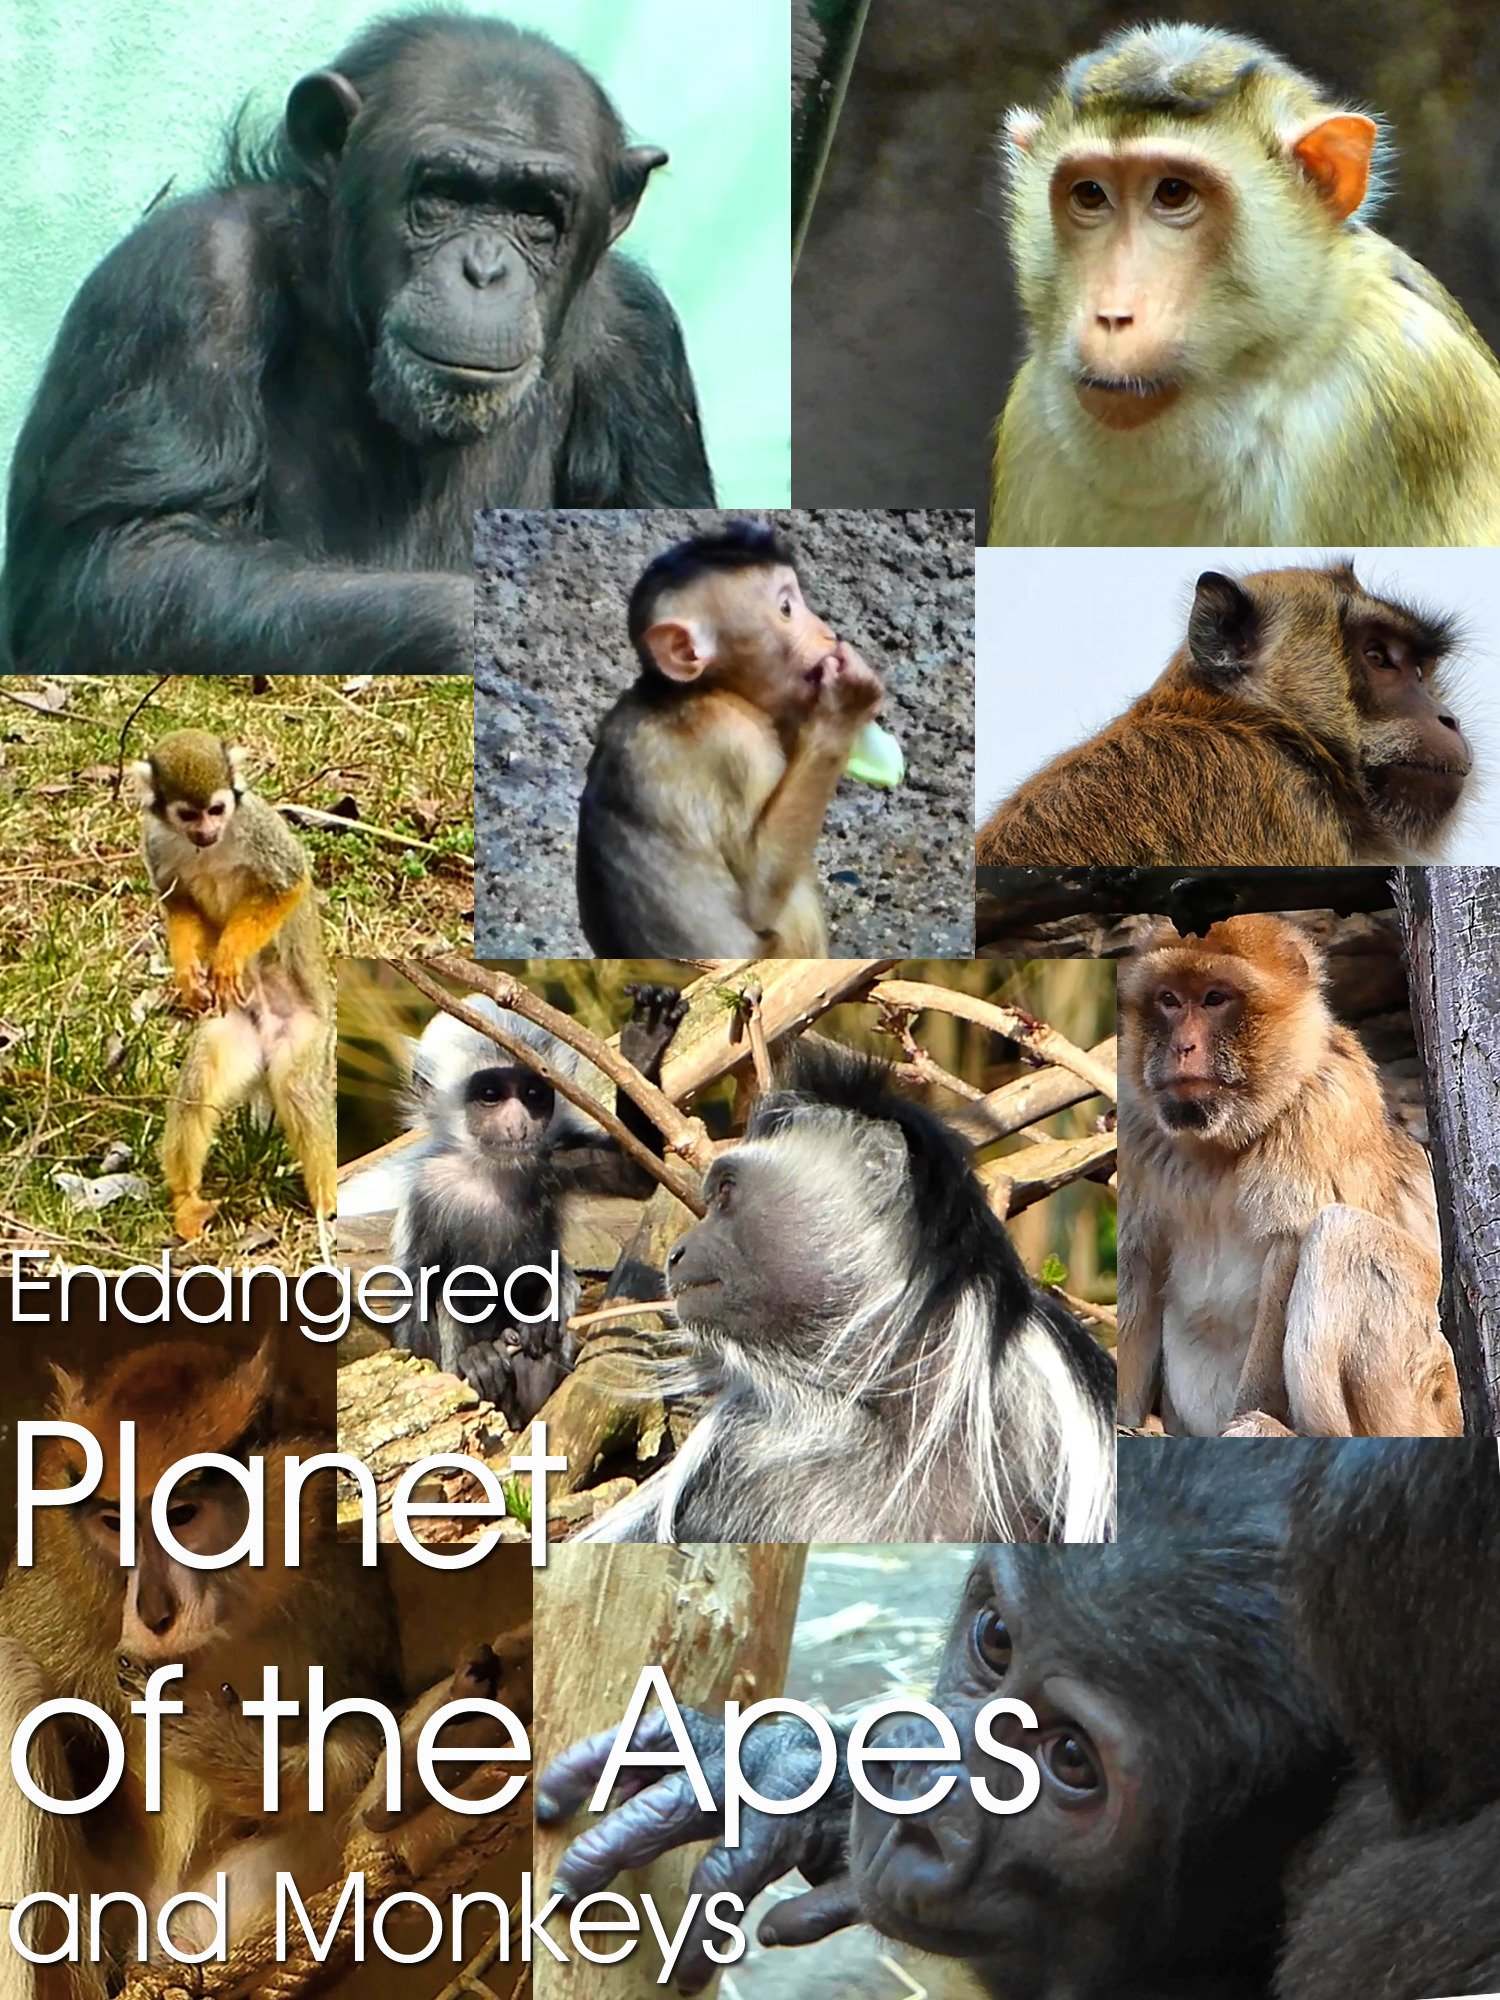 Endangered Planet of the Apes and Monkeys